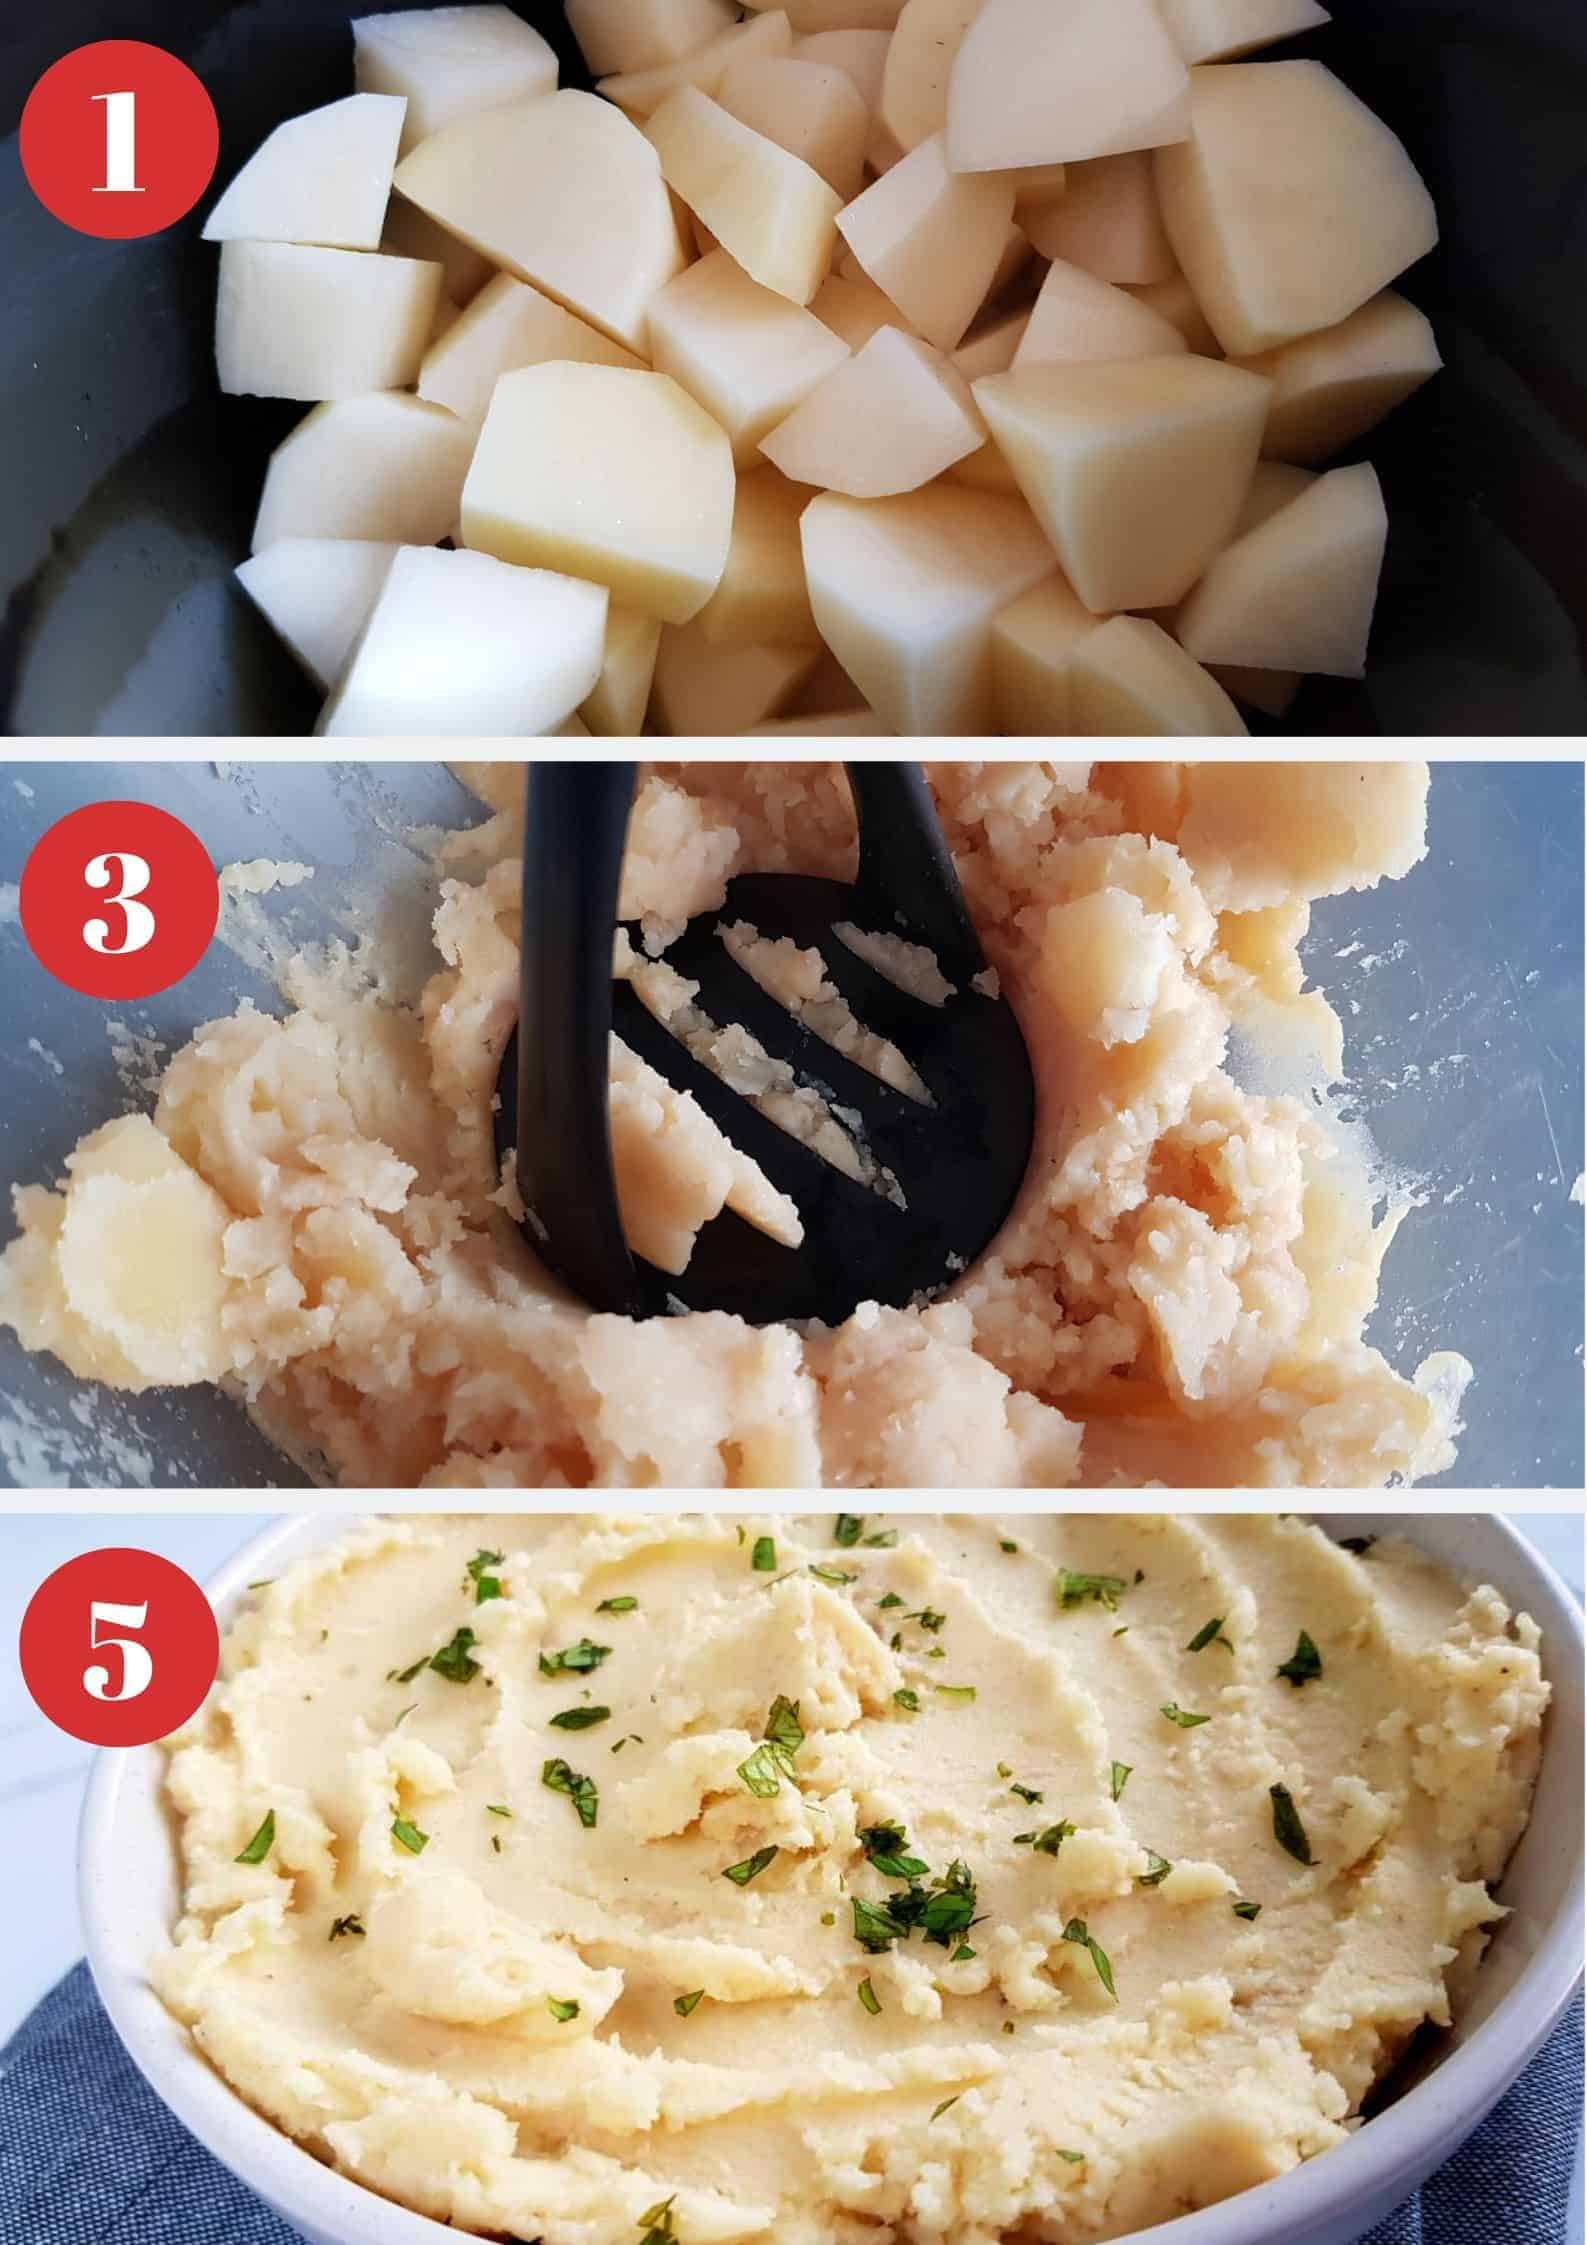 Infographic showing how to make slow cooker mashed potatoes.